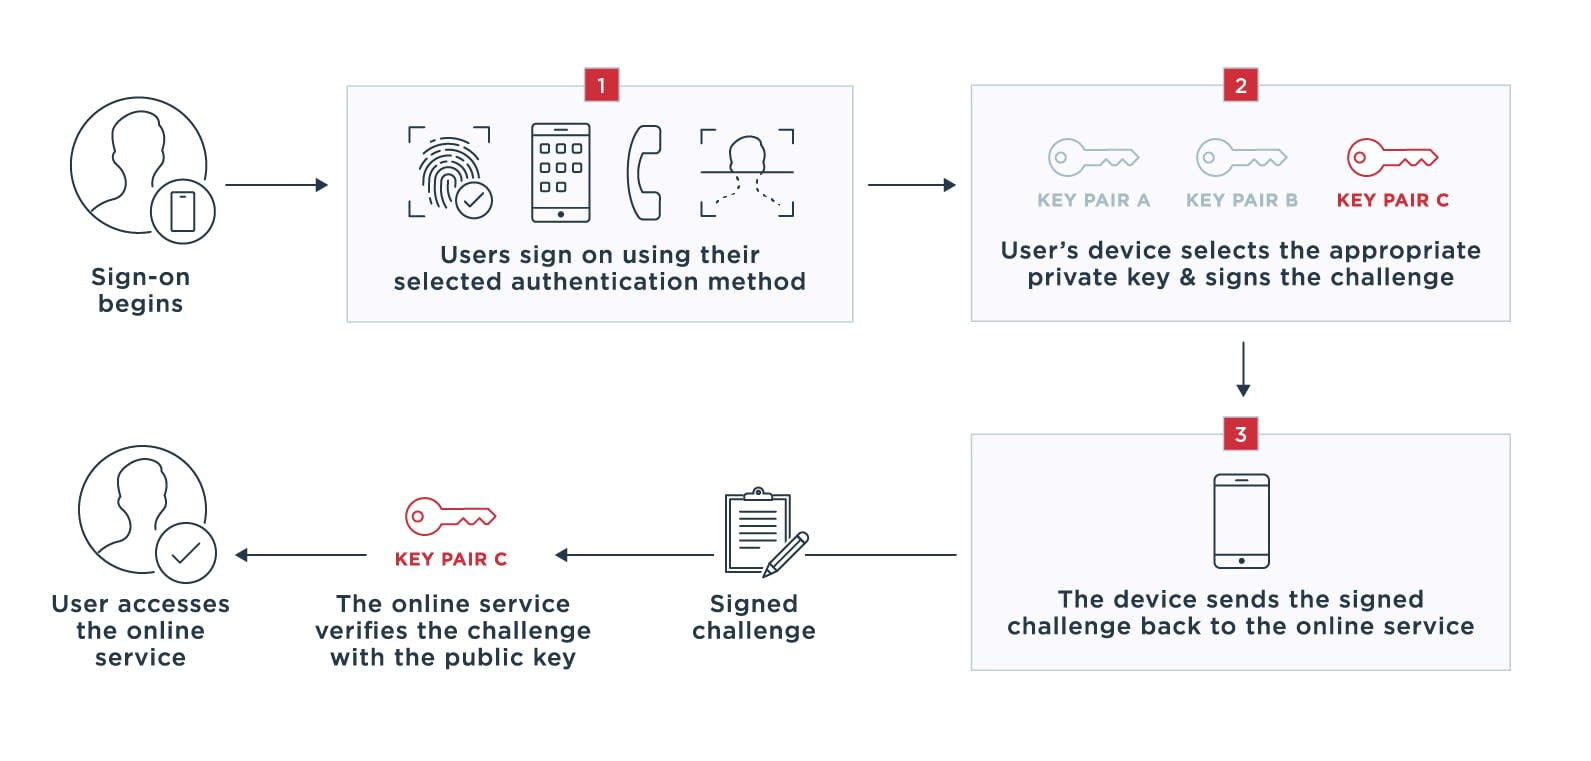 Diagram outlining how a user can quickly access the application using the authentication method they selected.